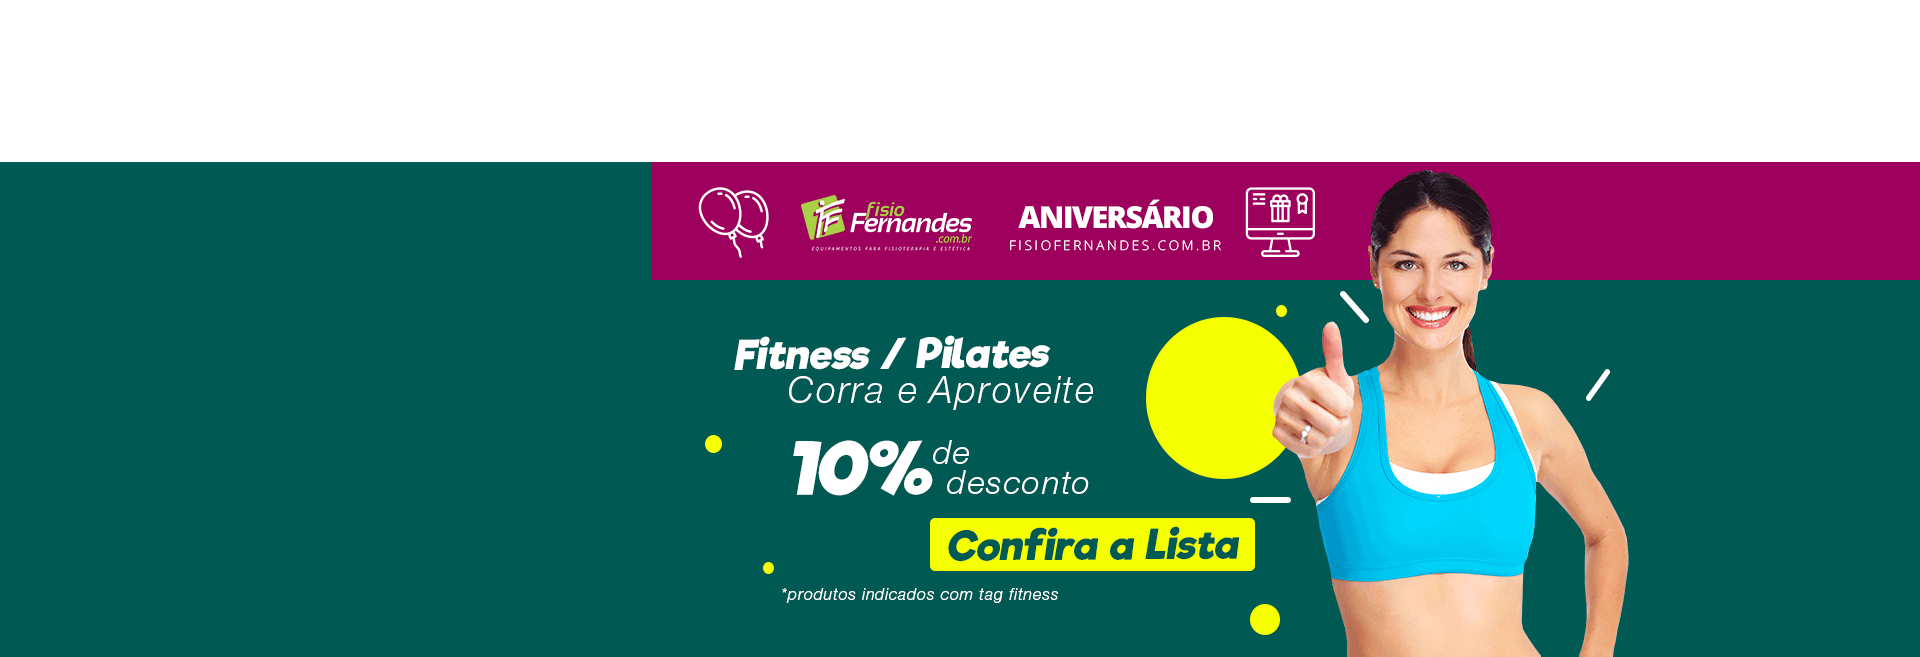 niver ecommerce - fitness/pilates